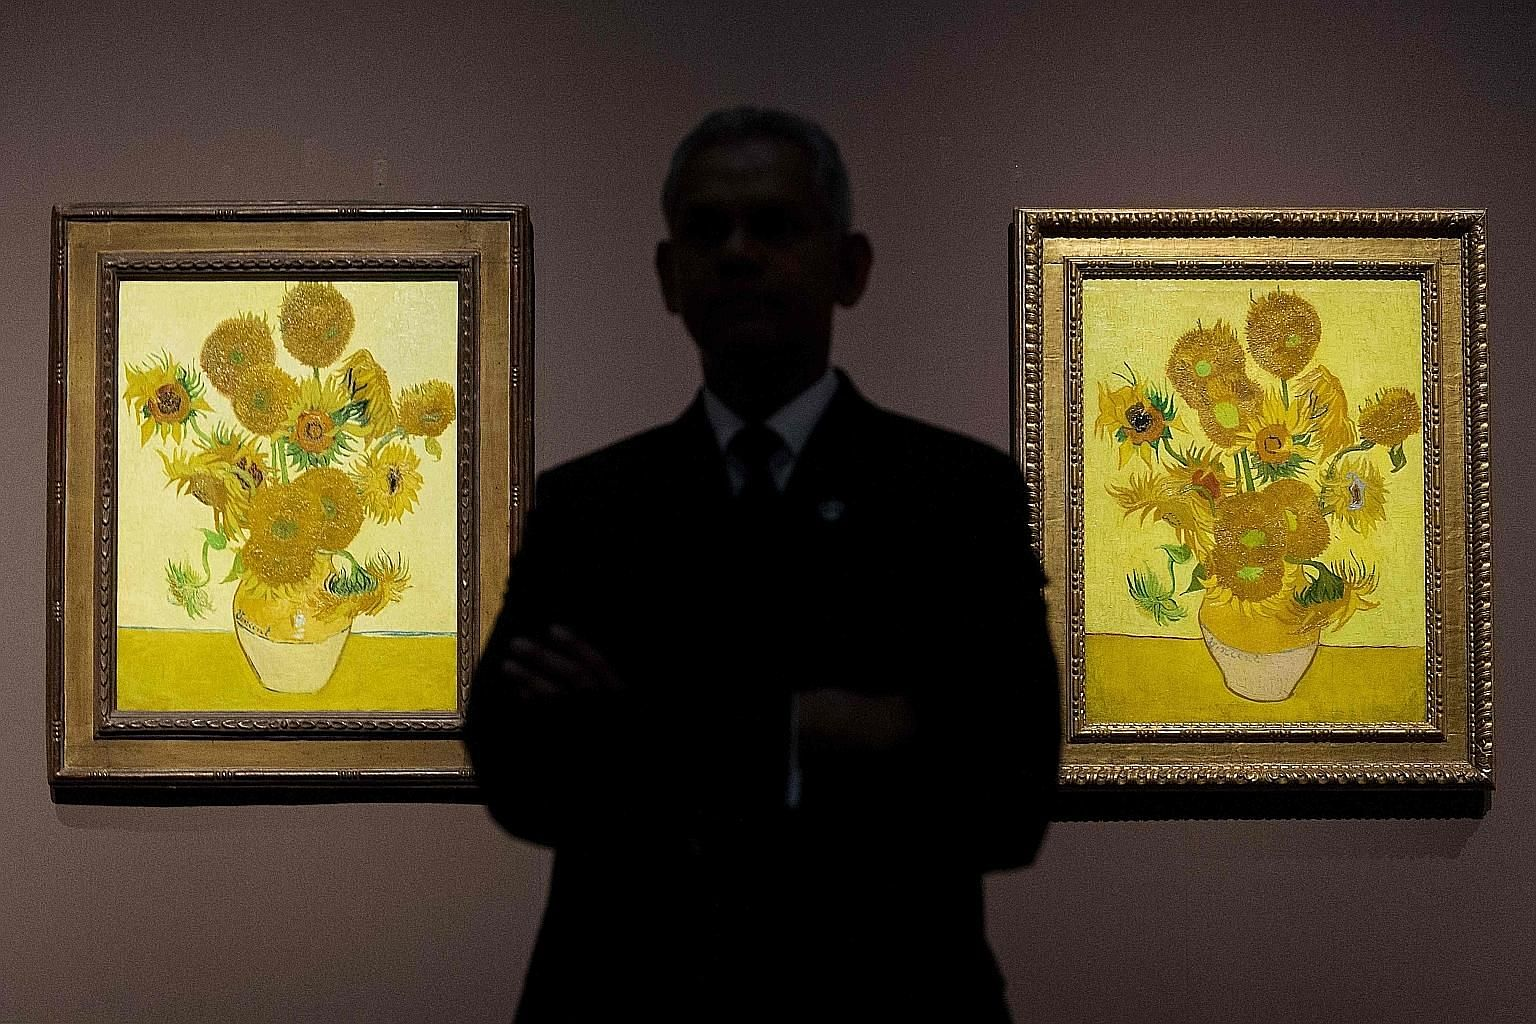 Two versions of Vincent van Gogh's Sunflowers at the National Gallery in London in 2014. The iconic paintings rank among the Dutch master's most famous works.